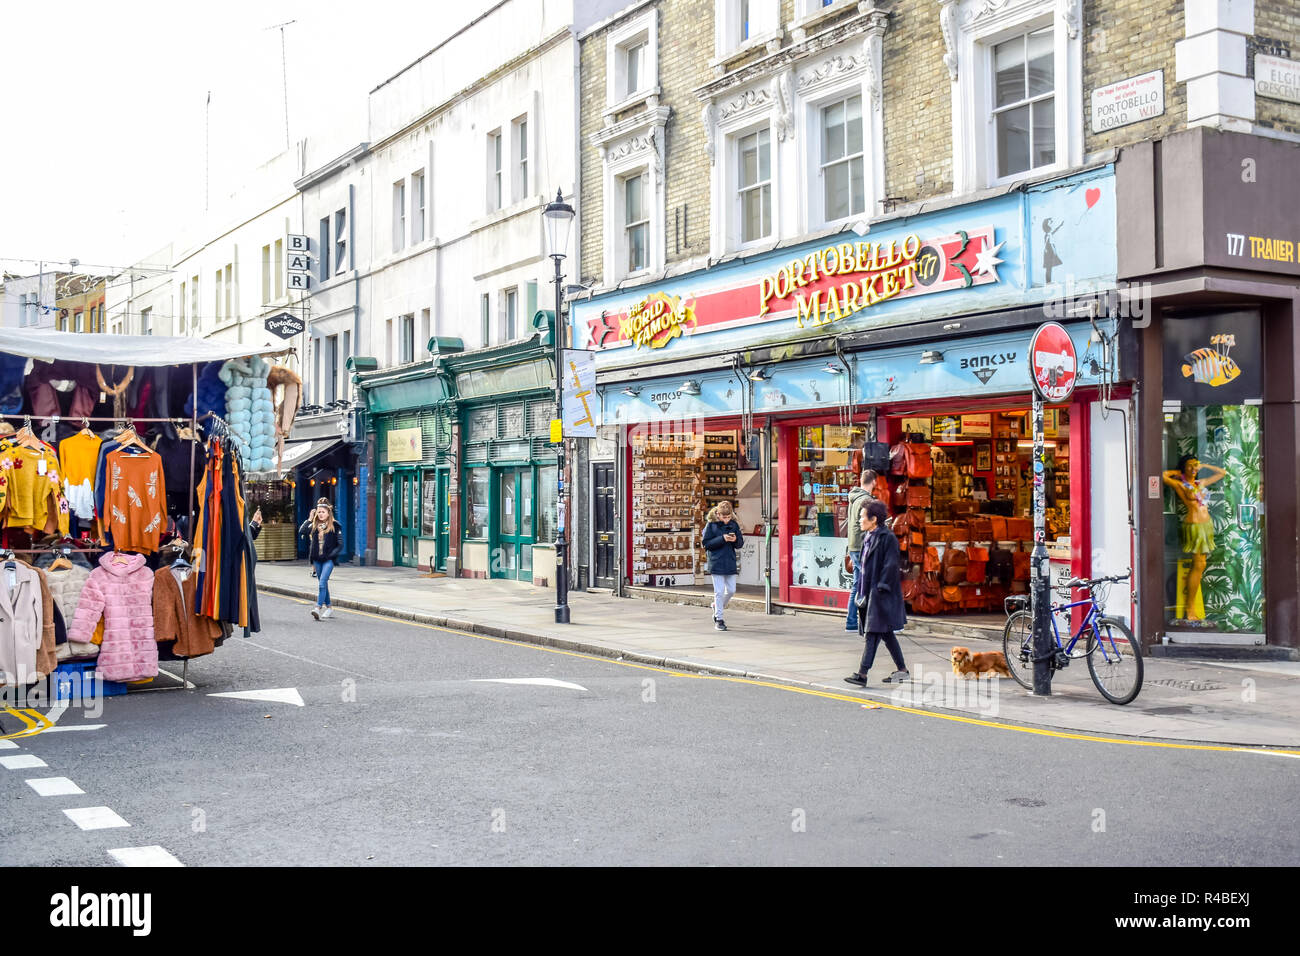 Portobello Road Market, a famous street in the Notting Hill district of Royal Borough of Kensington and Chelsea in west London, England Stock Photo